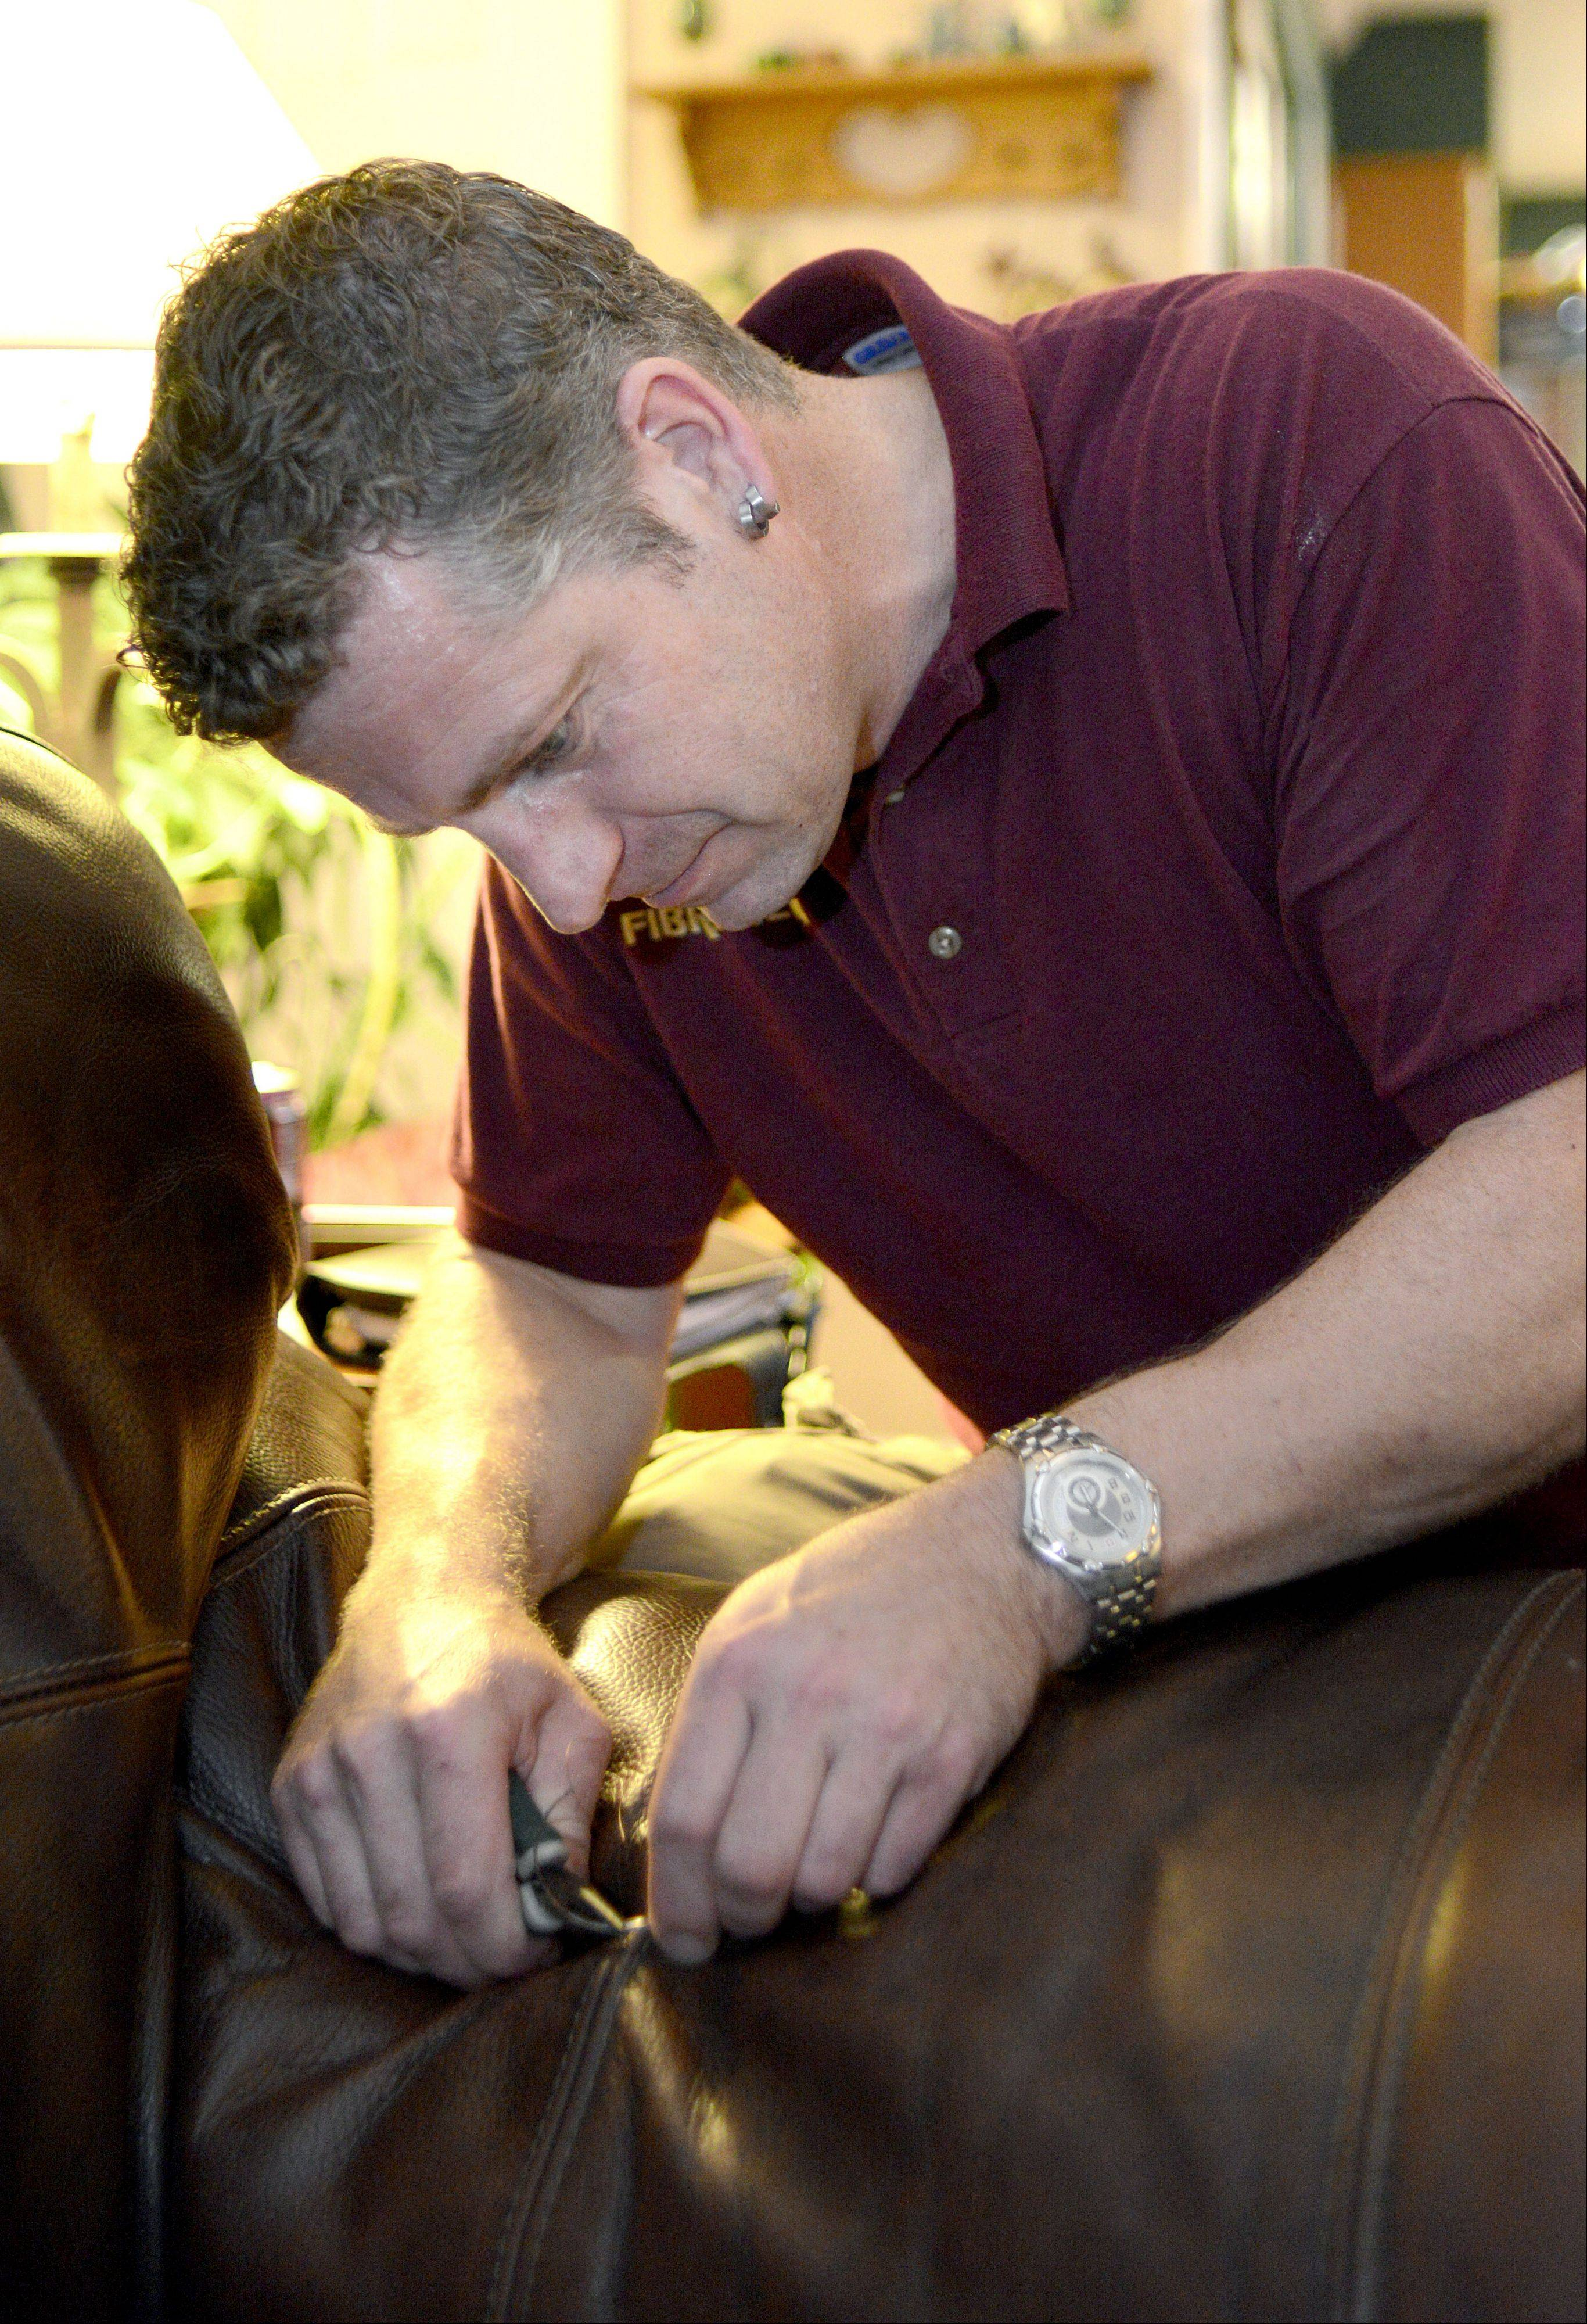 Ivar Vankemenade of Fibrenew Chicago NW restitches a busted seam on a leather couch at a client's home in Elgin. The company can fix cracks, stains, scratches, holes, rips and fades in leather, plastic, vinyl, fabric and upholstery.